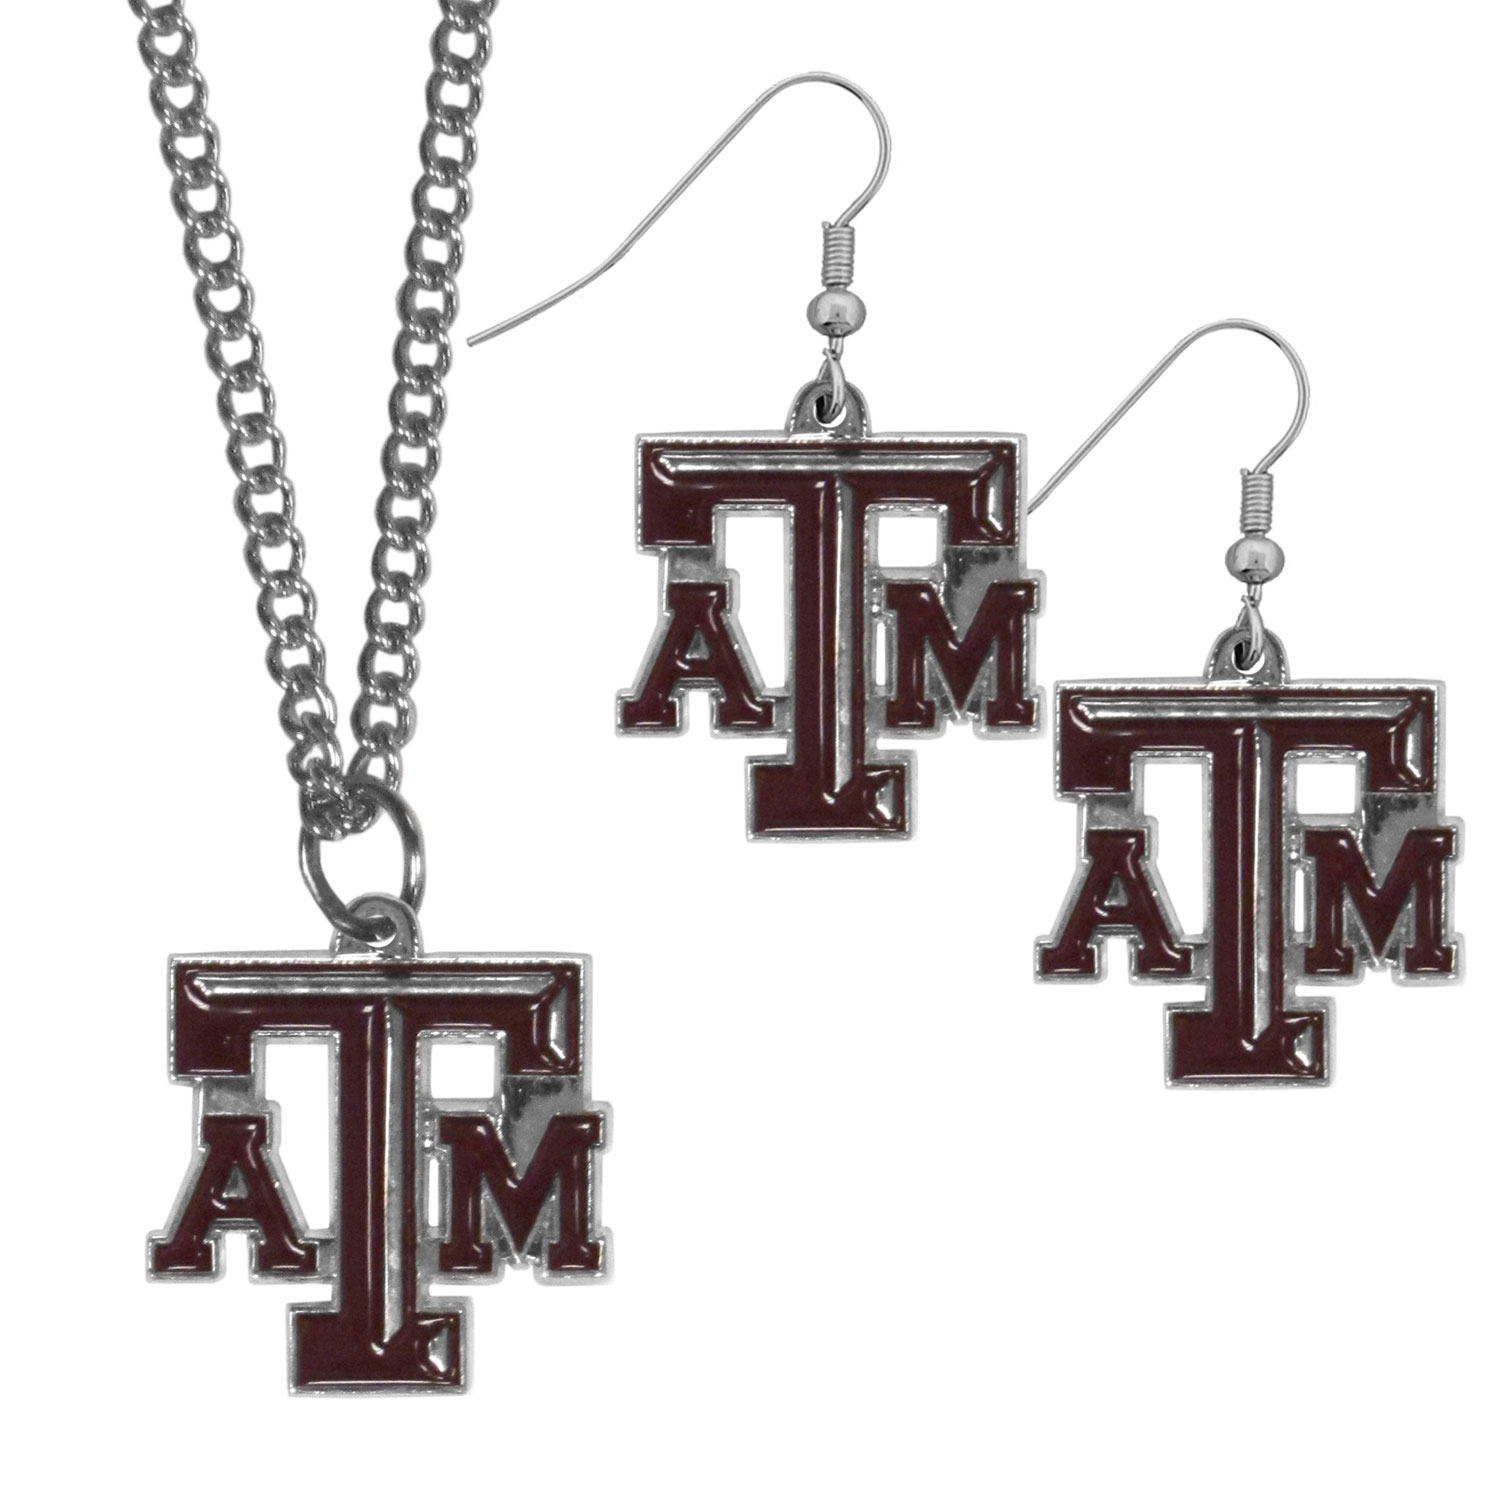 Texas A and M Aggies Dangle Earrings and Chain Necklace Set - This classic jewelry set contains are most popular Texas A & M Aggies dangle earrings and 22 inch chain necklace. The trendy, dangle earrings are lightweight and feature a fully cast metal team charm with enameled team colors. The matching necklace completes this fashion forward combo and is a spirited set that is perfect for game day but nice enough for everyday.